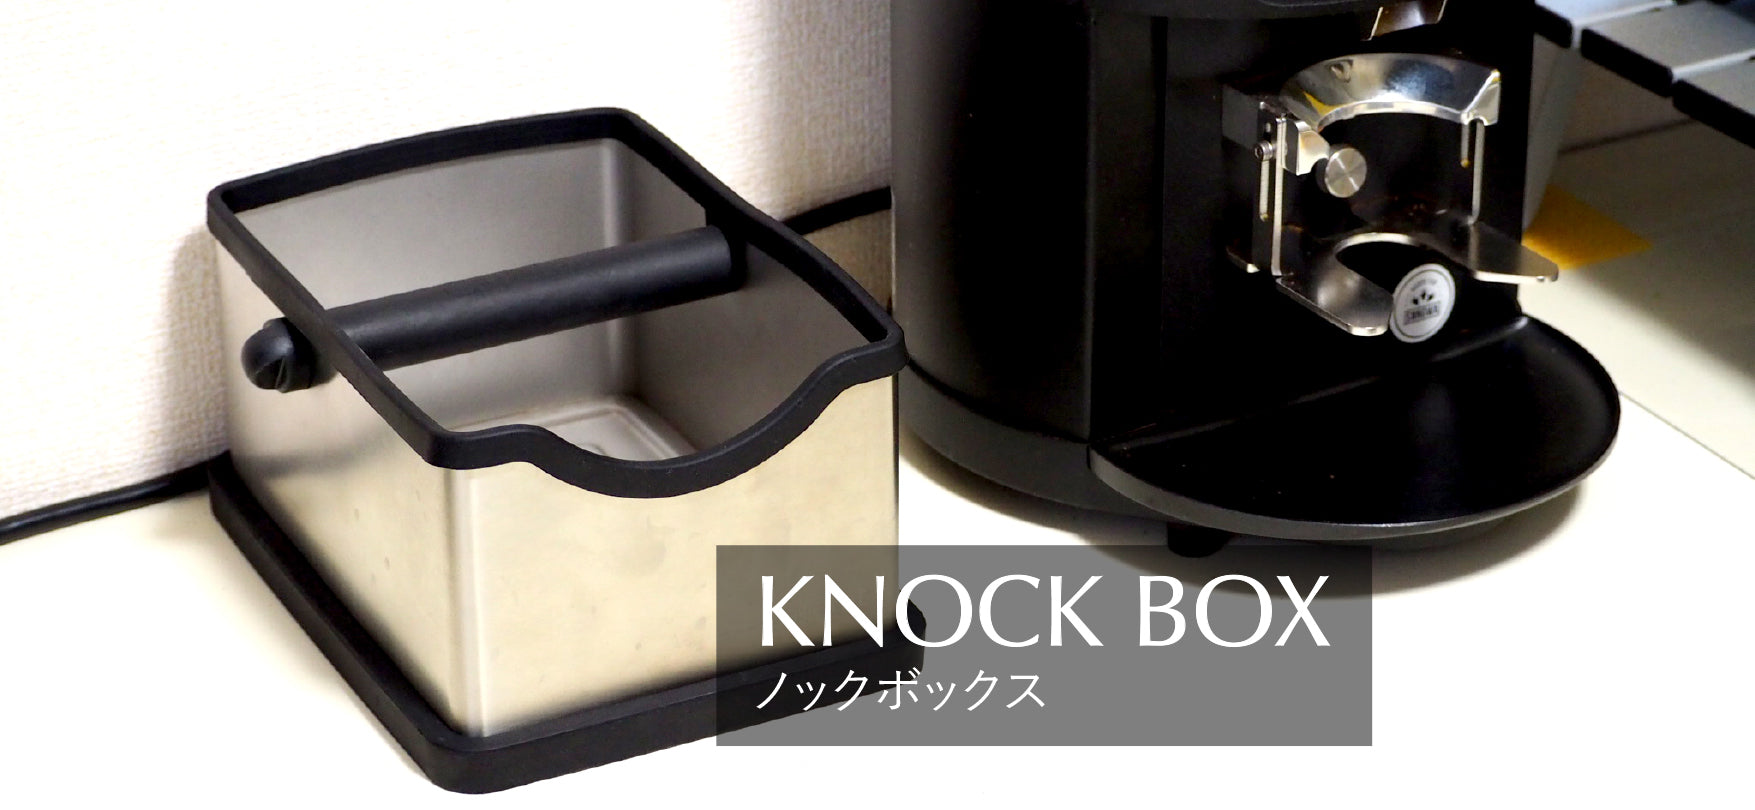 Knockbox